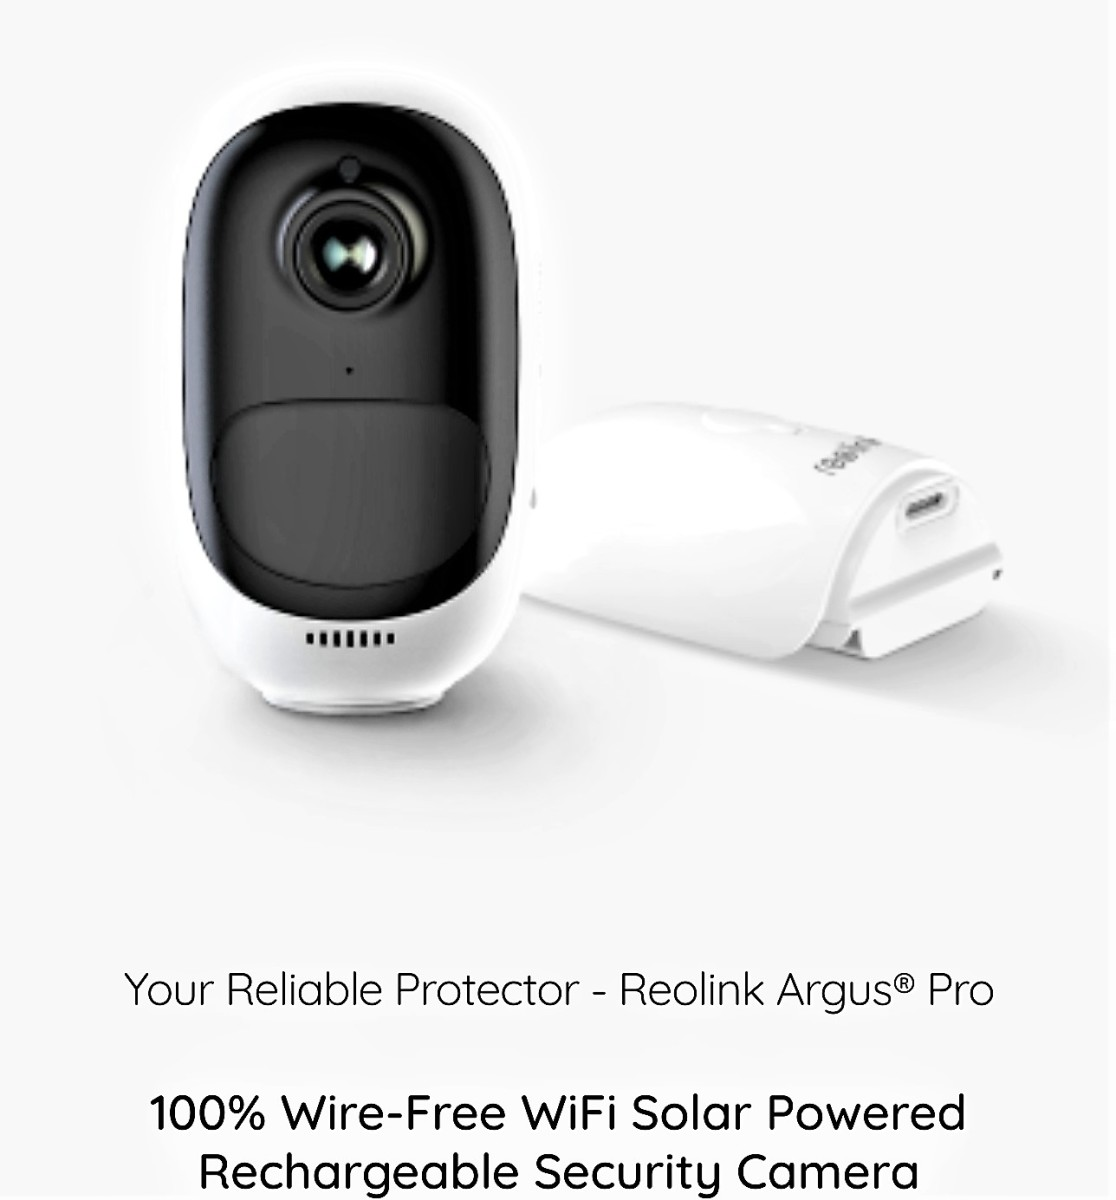 Review of Reolink Argus Pro Security Camera (100% Wireless & Rechargeable)